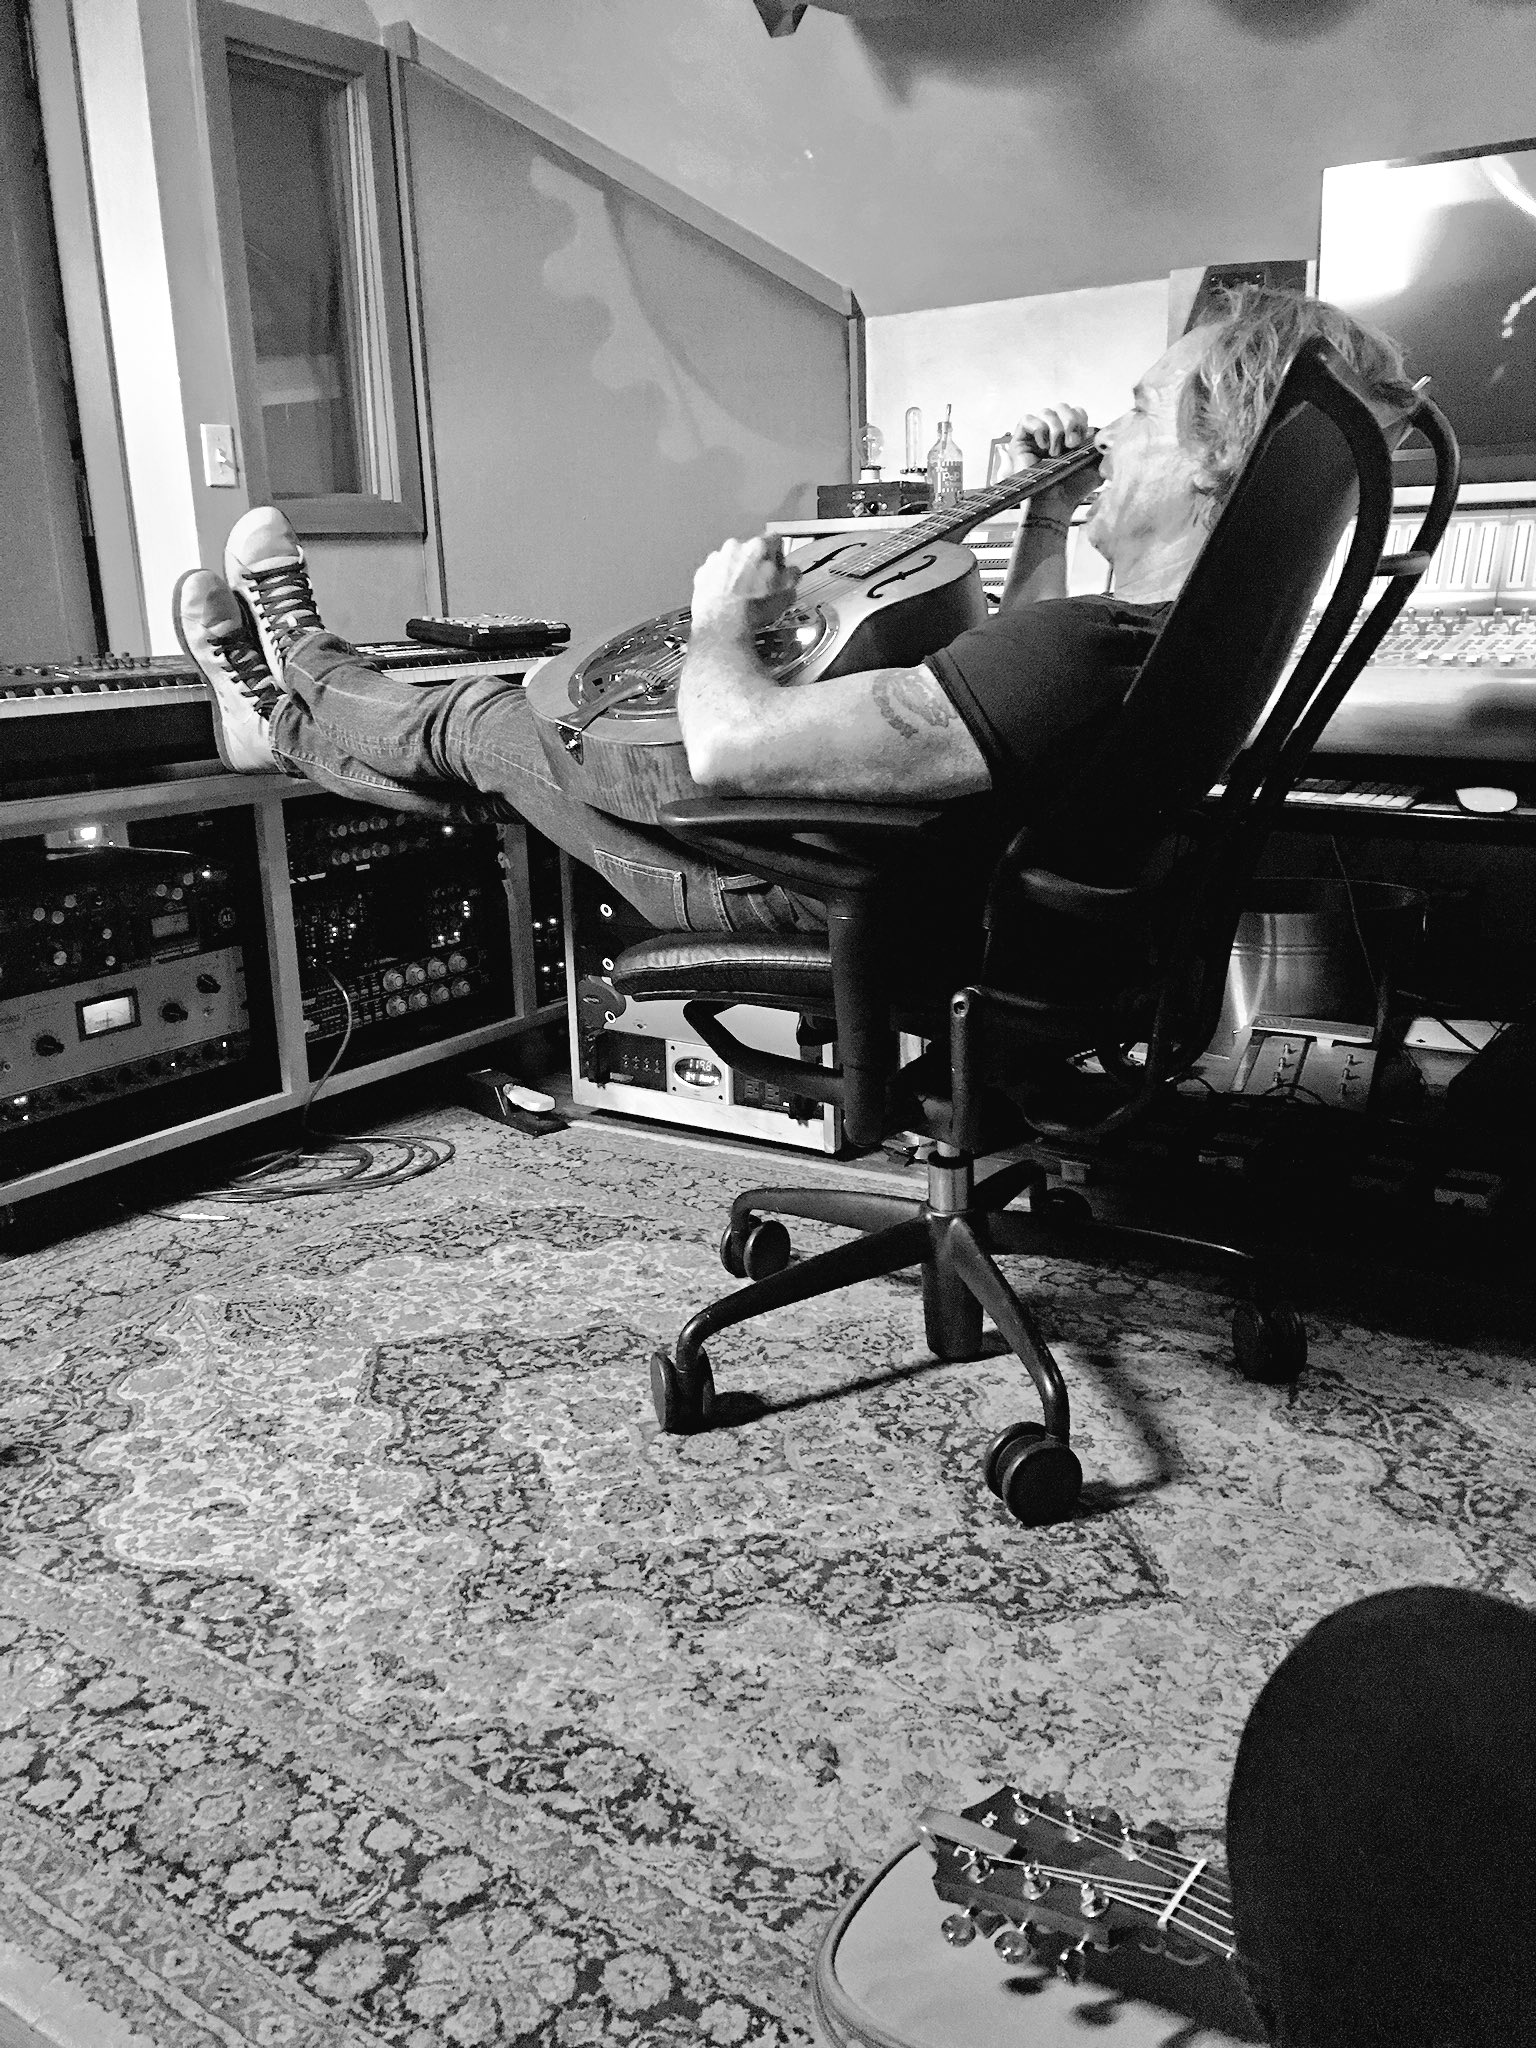 Writin' sweet tunes with the legend Jeffrey Steele https://t.co/yQsjBV3oHL